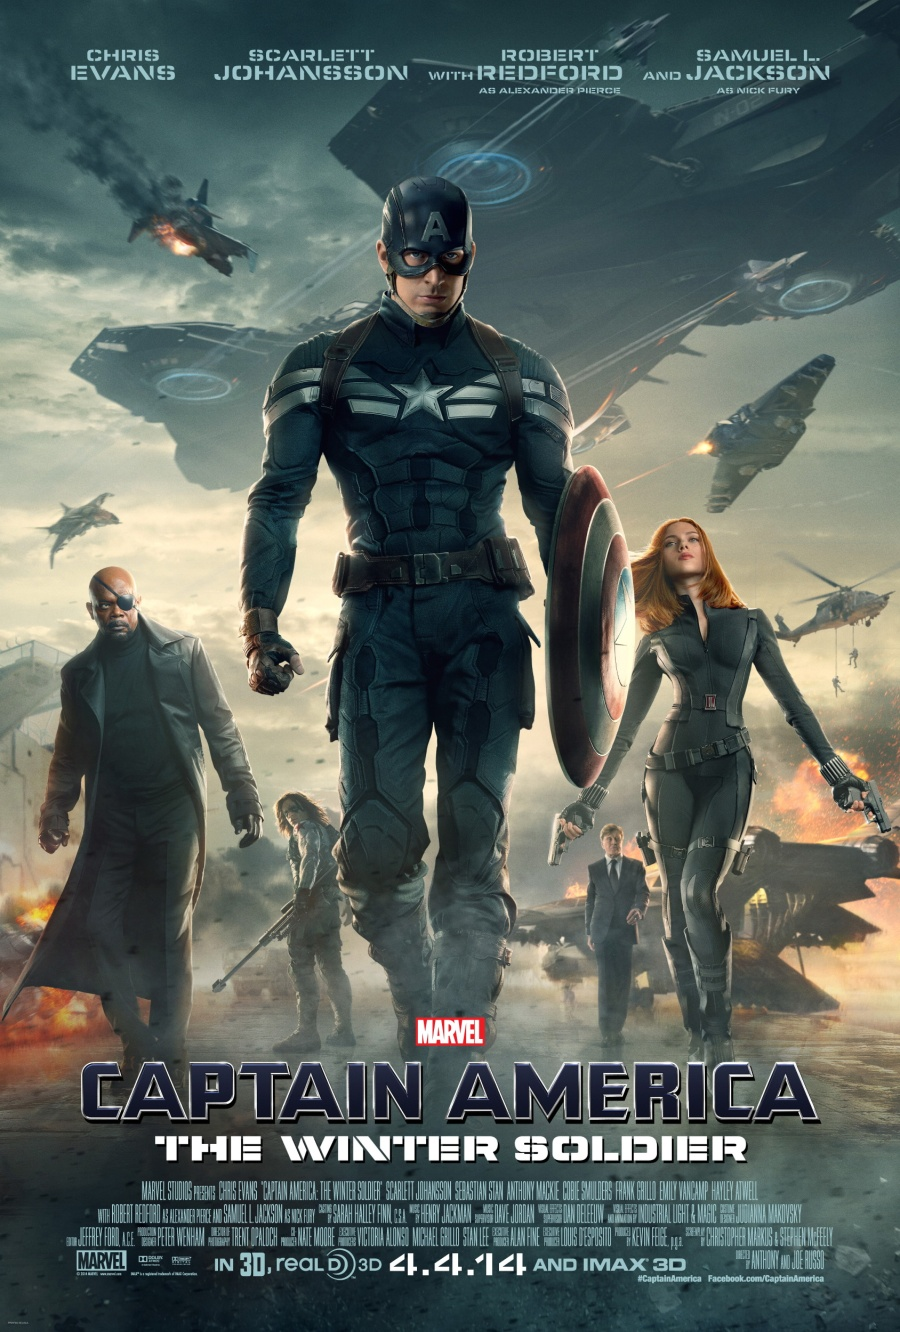 captain-america-the-winter-soldier-movie-poster-marvel-cinematic-1038896